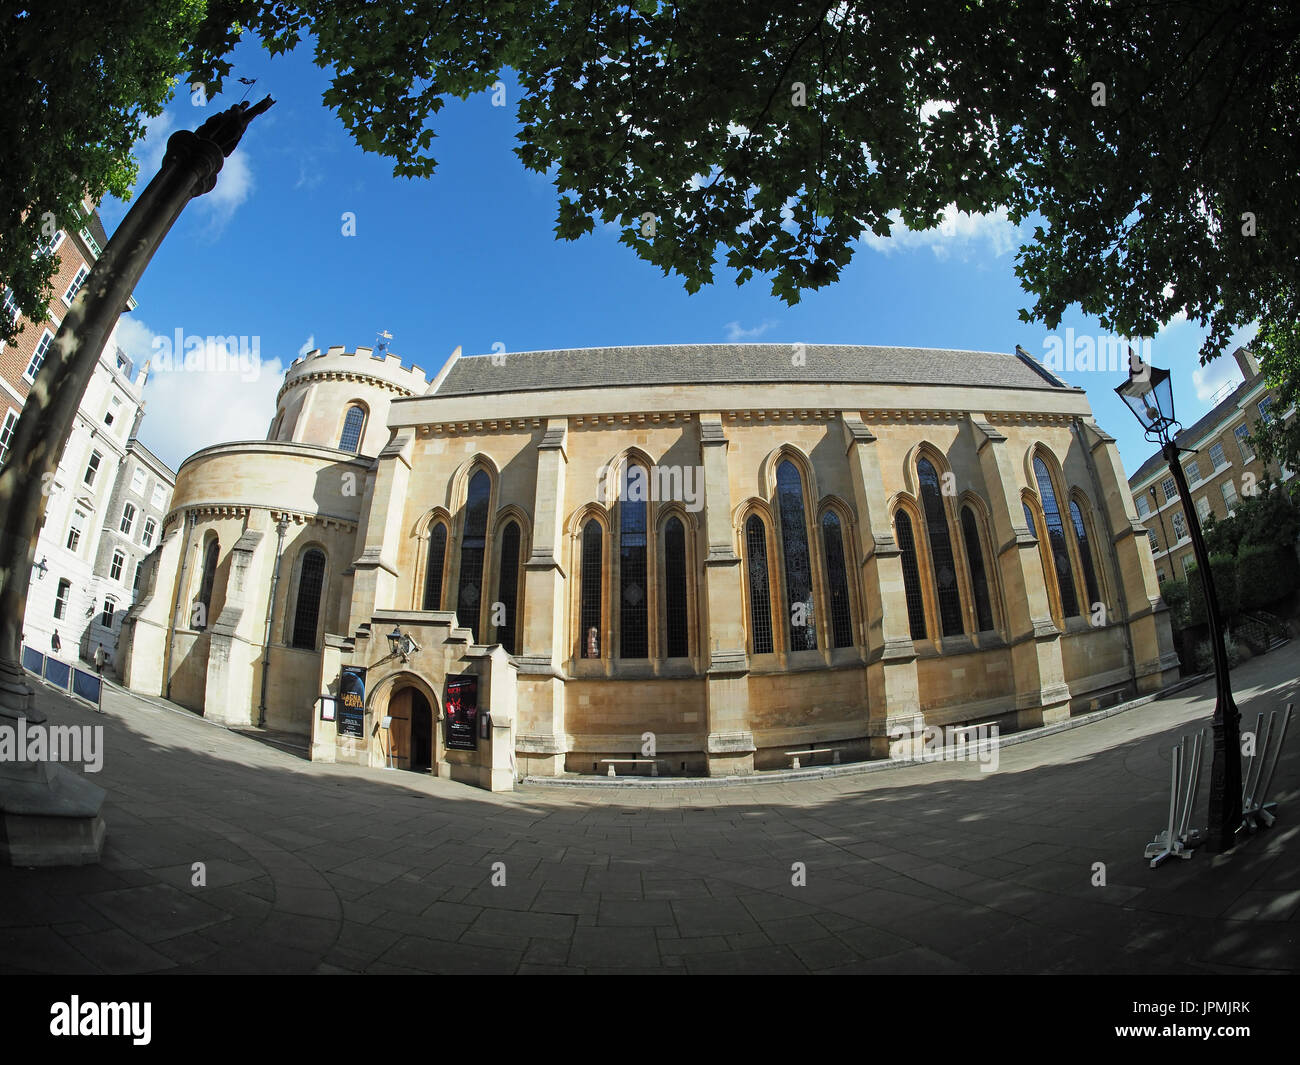 Extreme wide angle fisheye view of Temple Church London - Stock Image